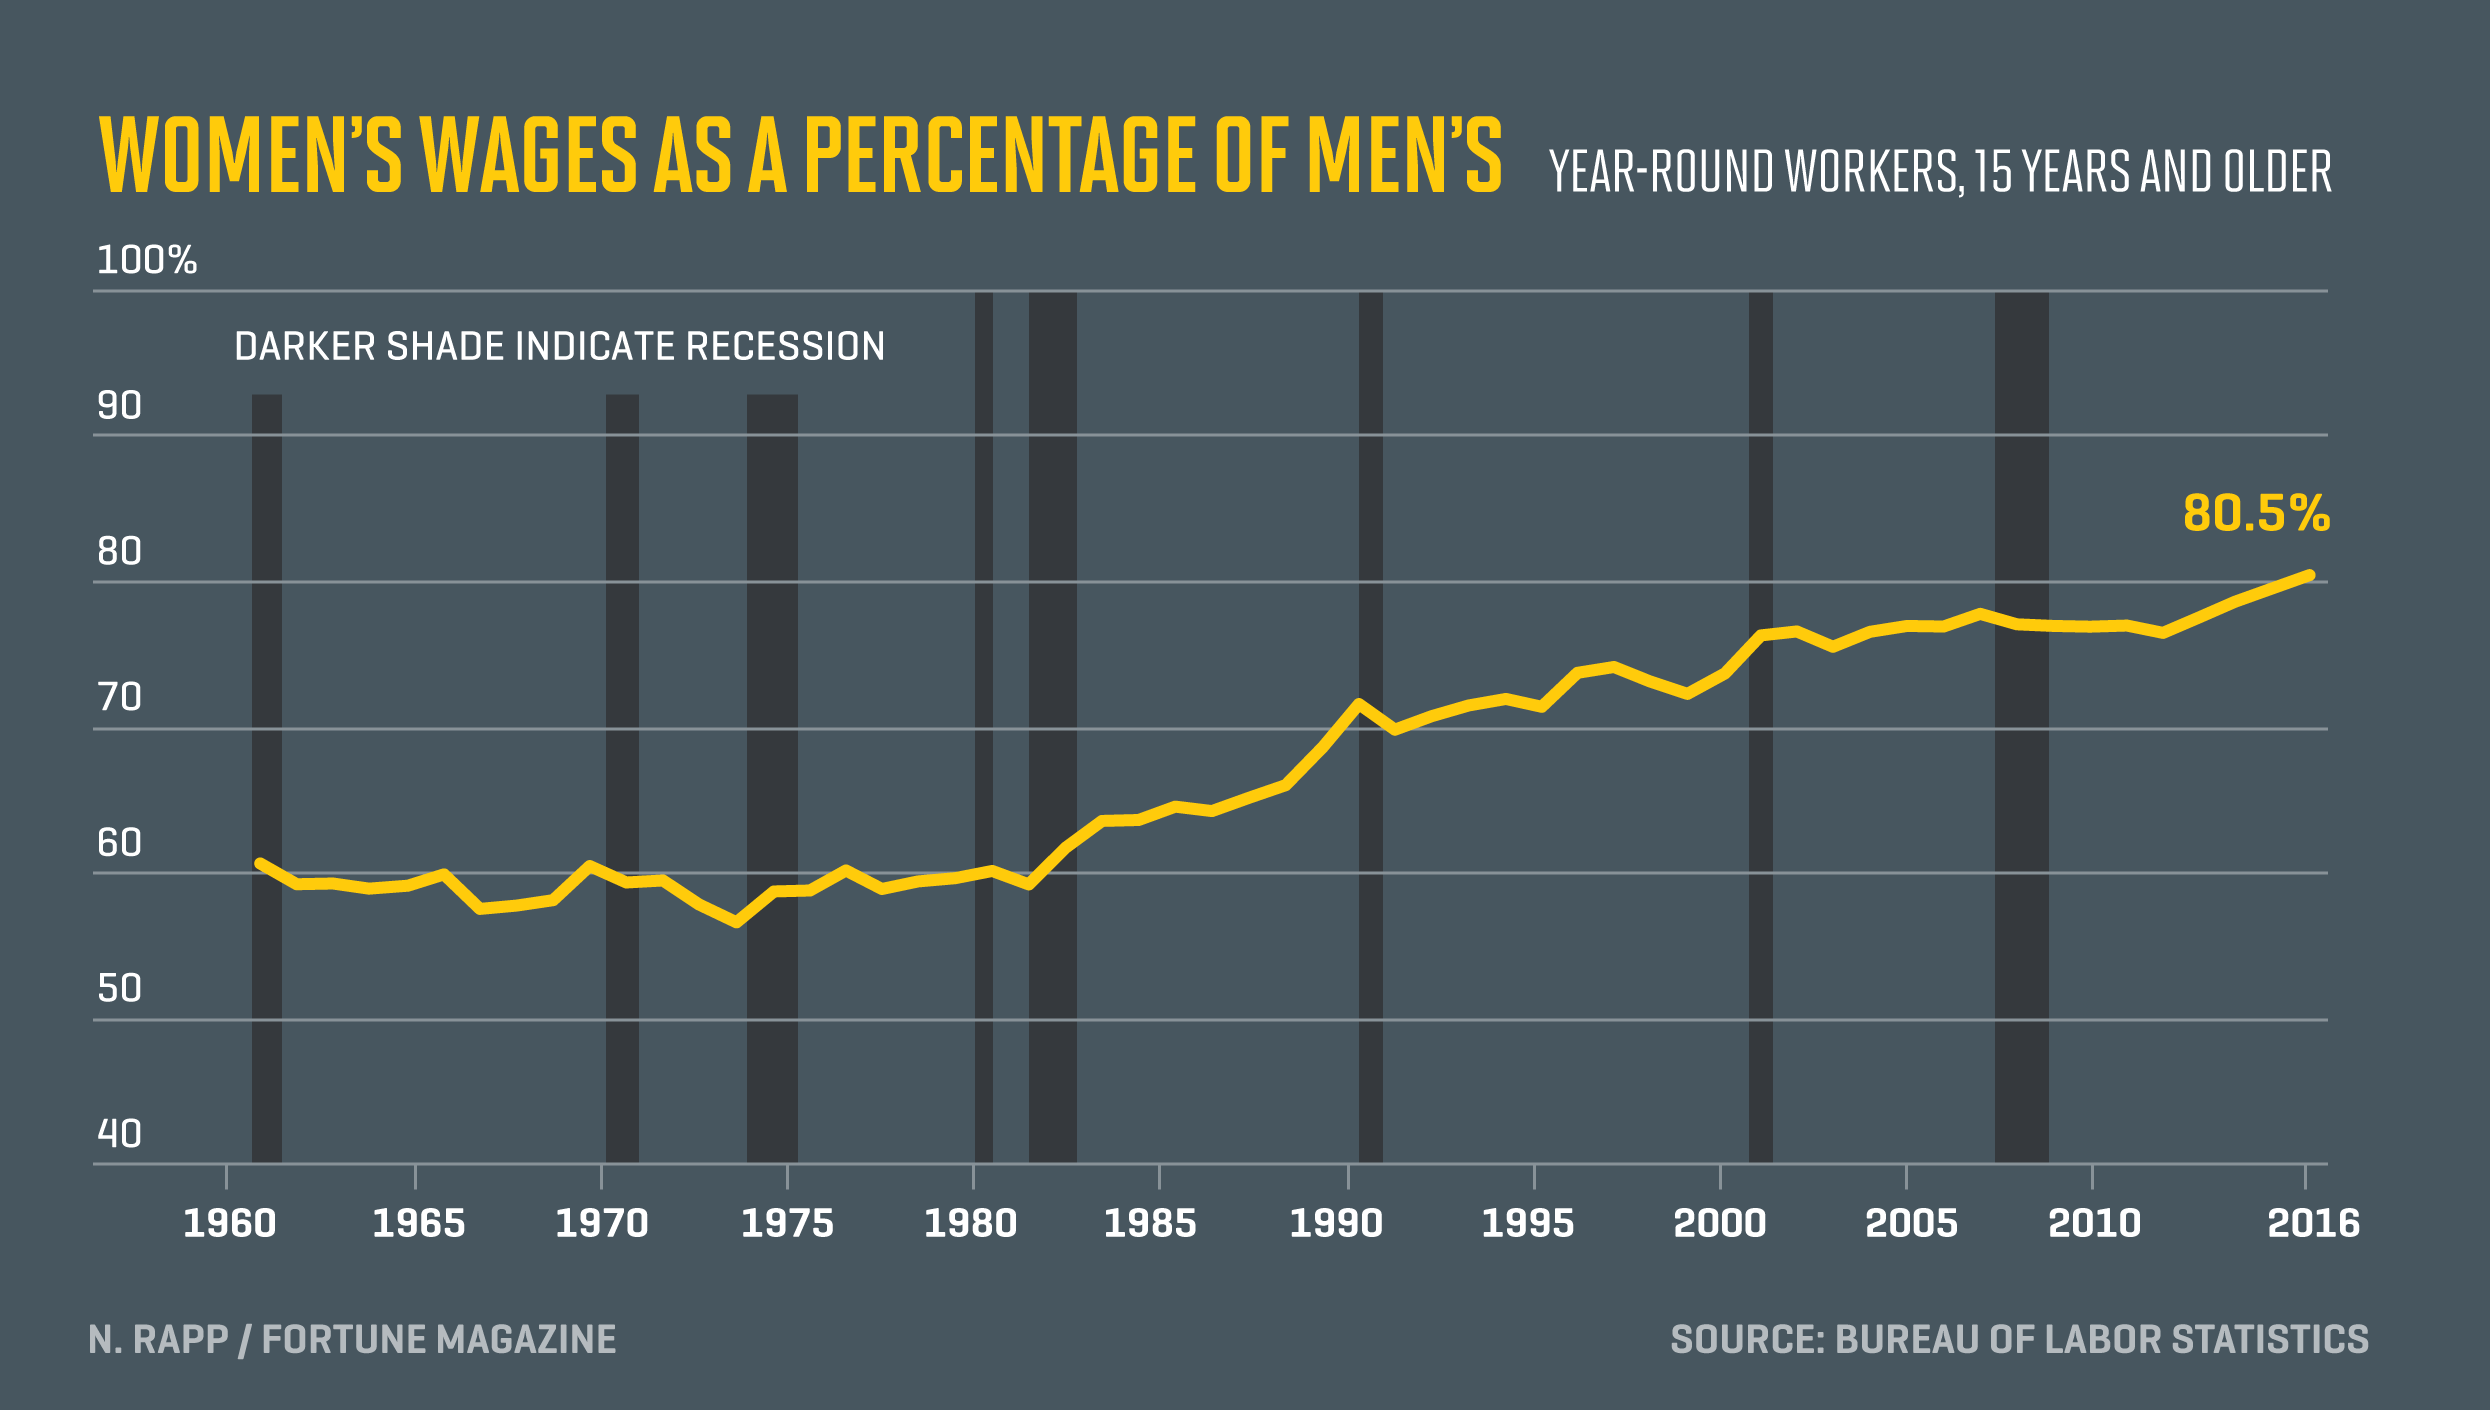 Chart shows change in women's wages as a ratio to men's